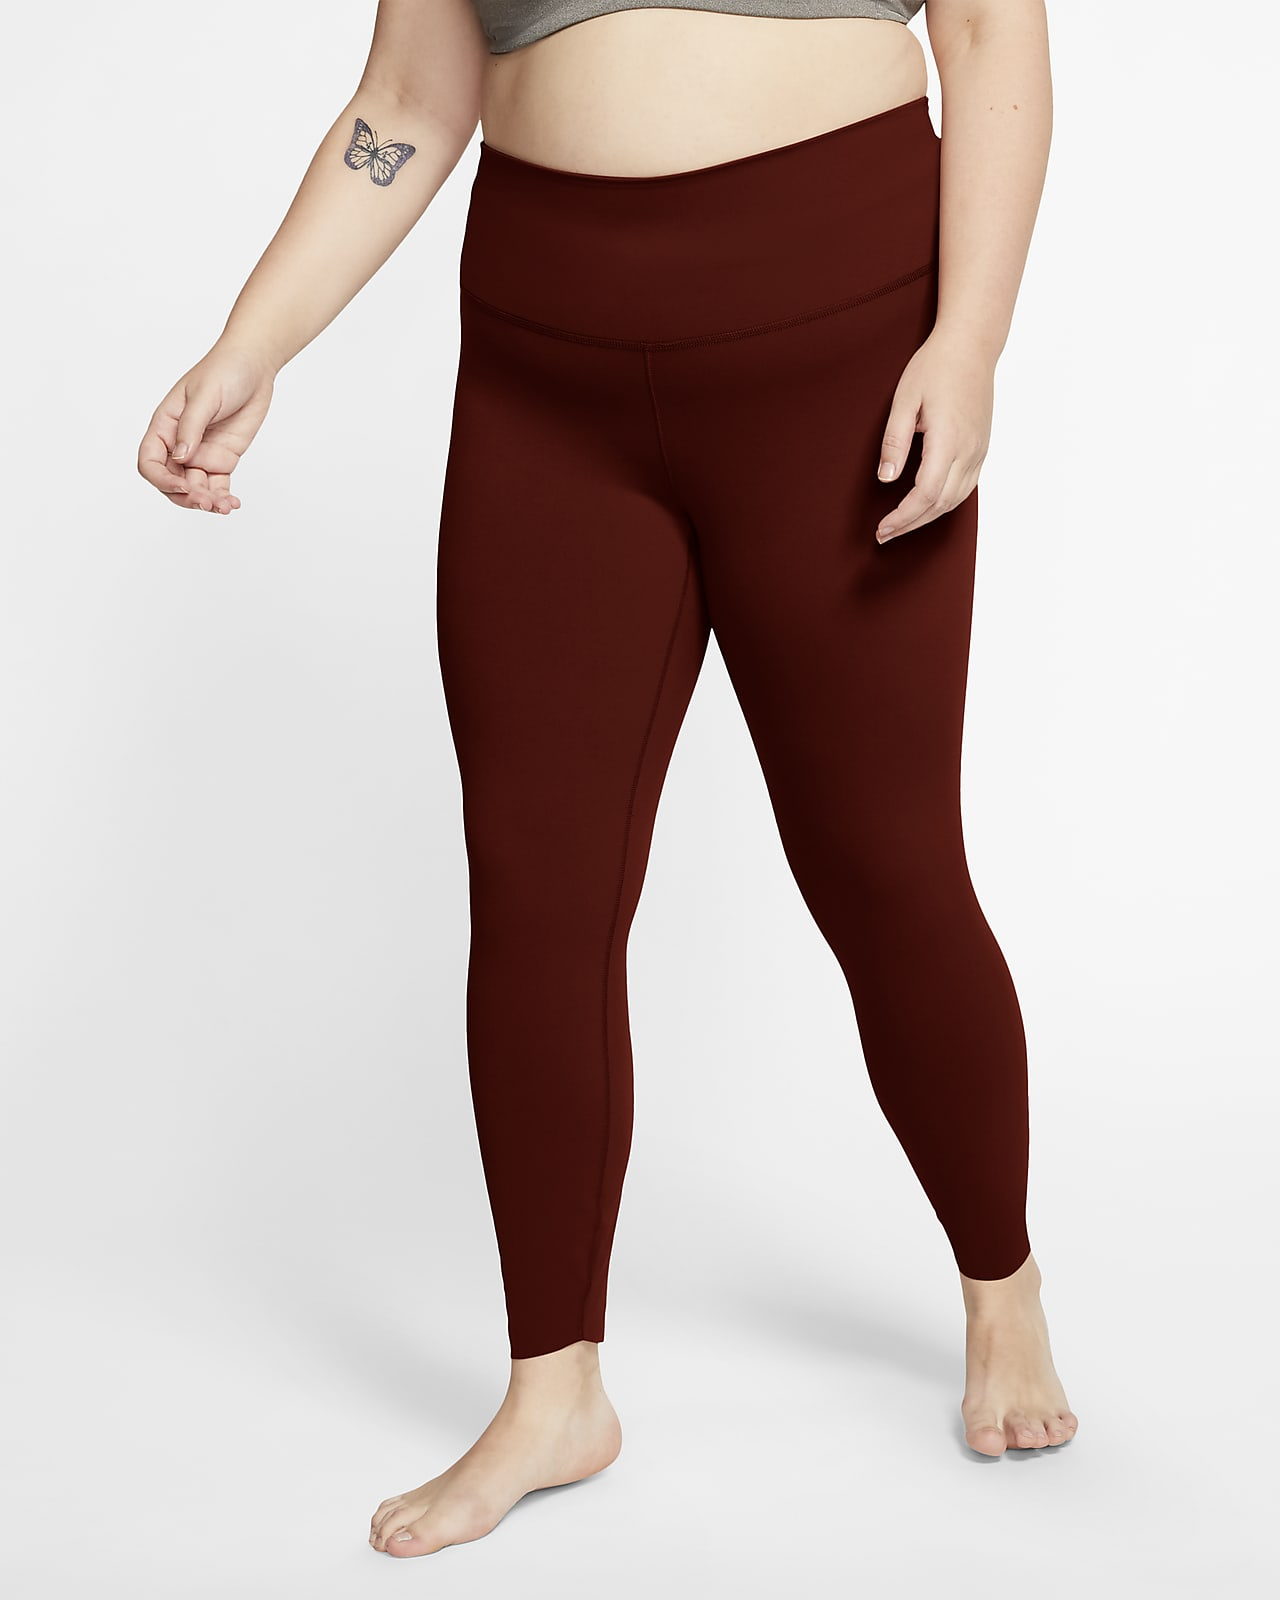 Nike Yoga Luxe Women's High-Waisted 7/8 Infinalon Leggings (Plus Size)